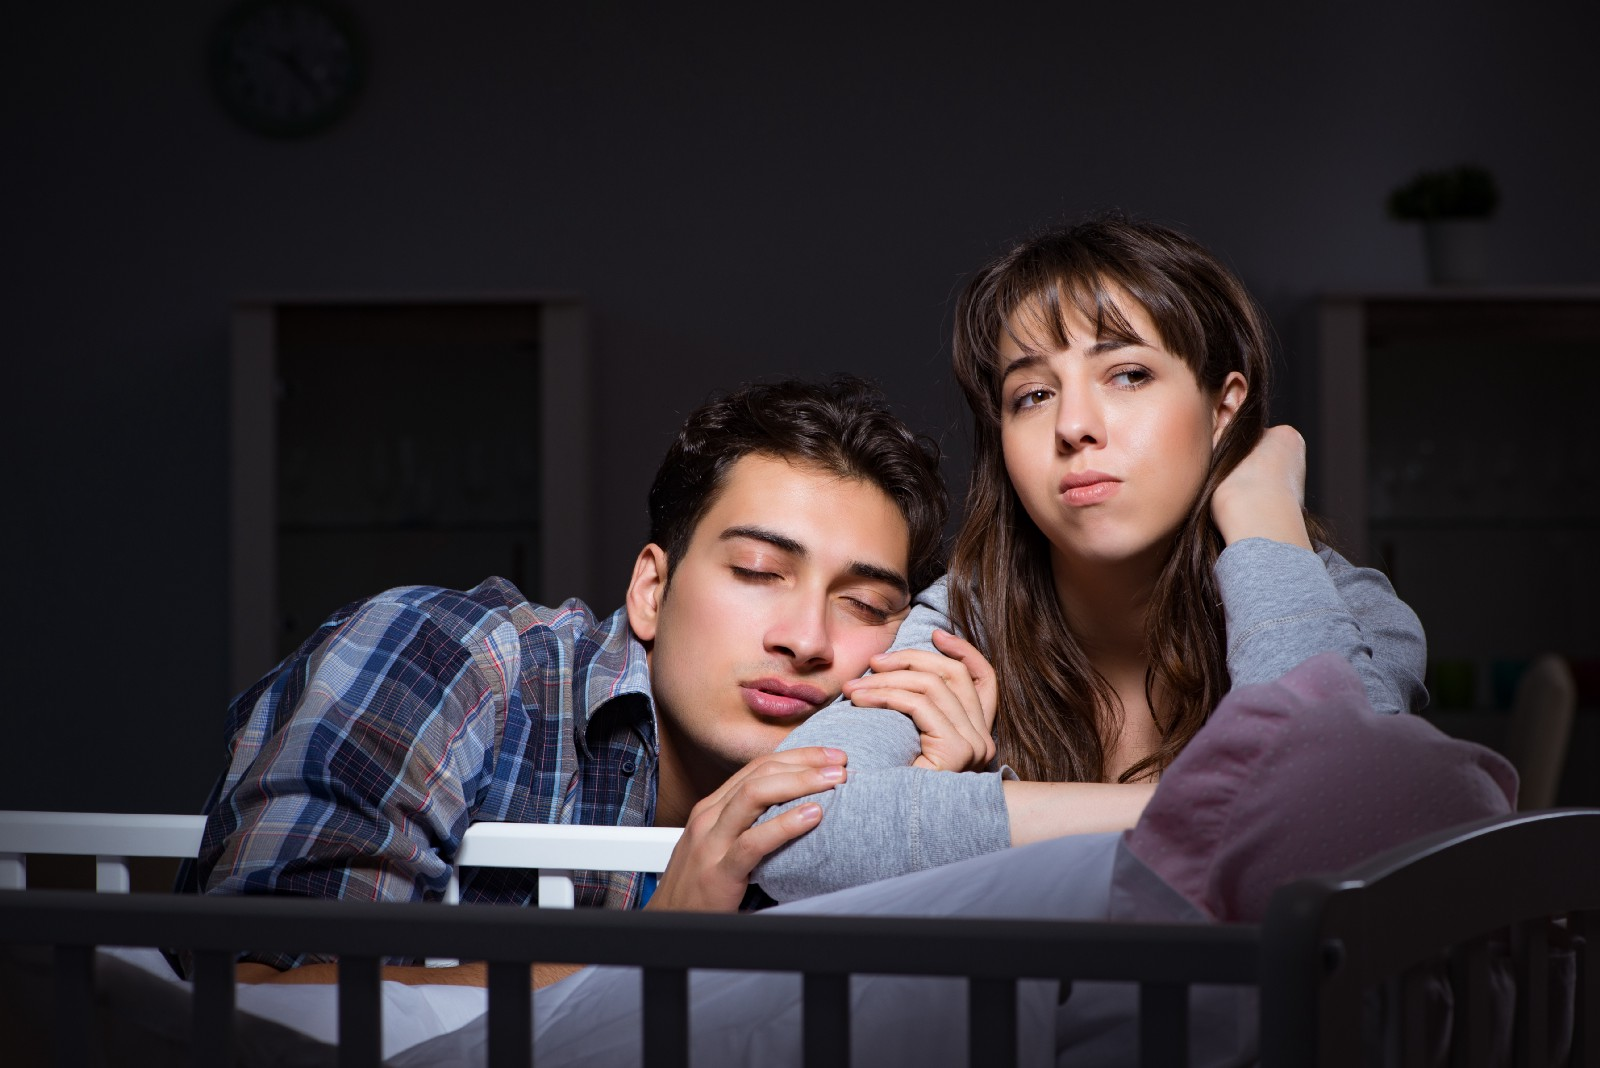 Is Sleep Deprivation Impacting Your Relationship?